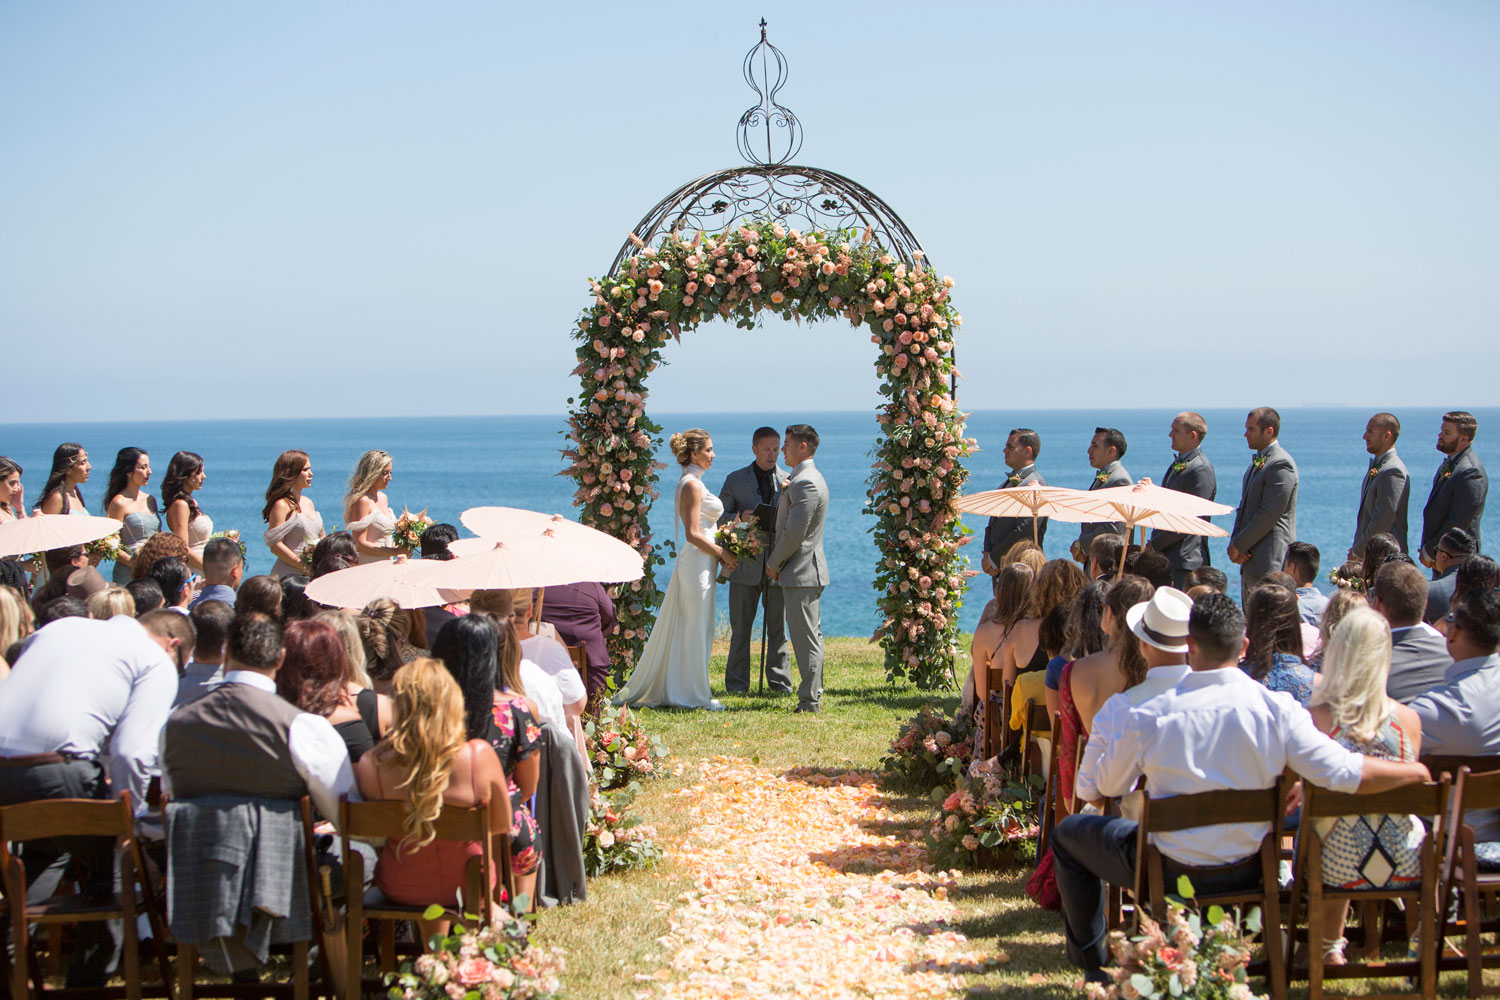 ocean view wedding ceremony, wedding arbor with flowers and iron structure